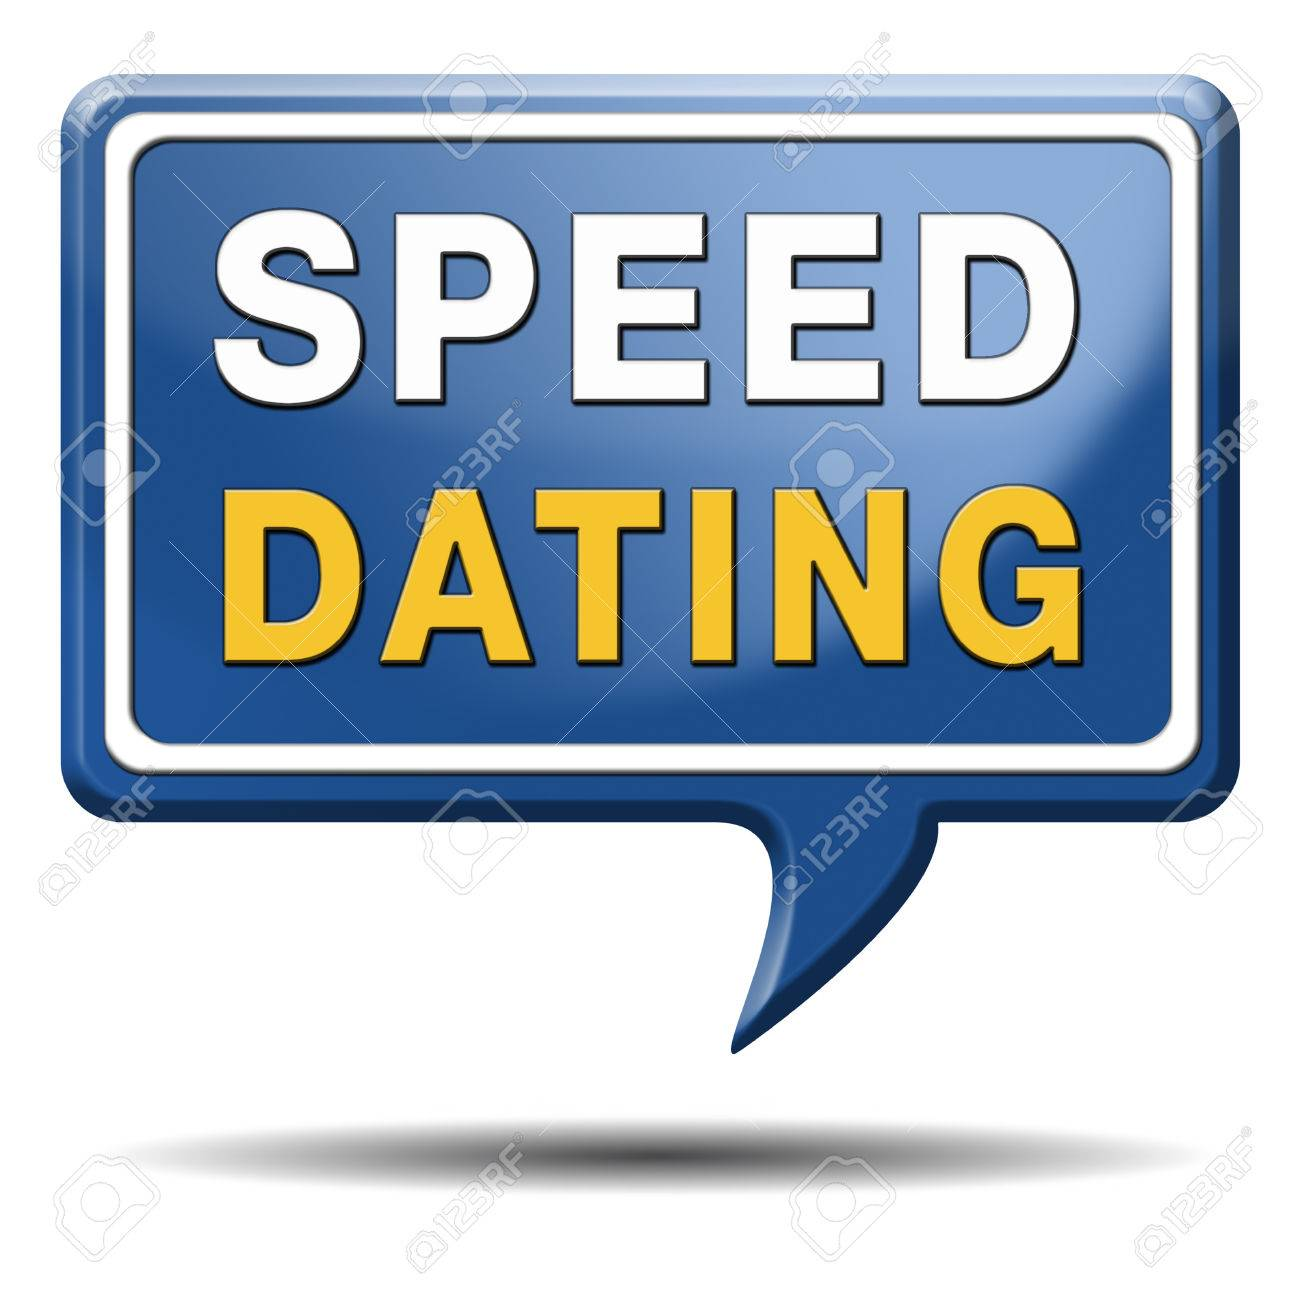 Speed dating with boyfriend